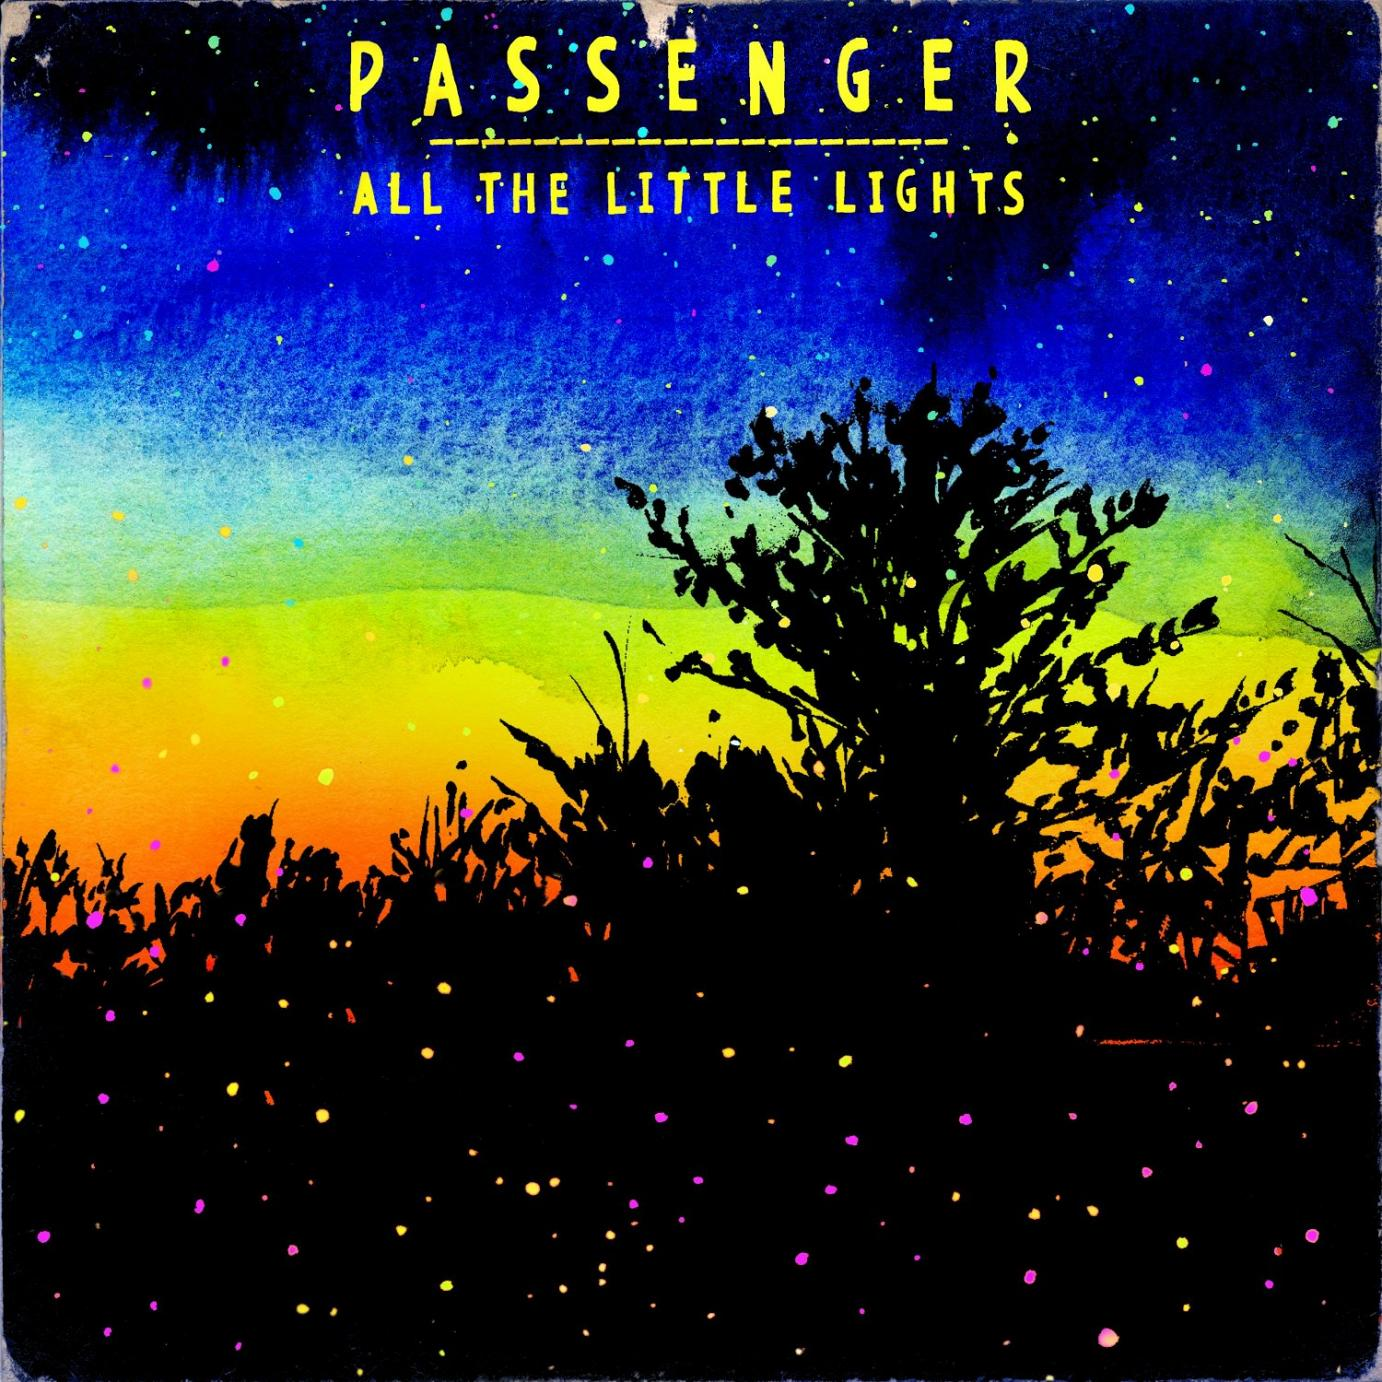 Passenger – All The Little Lights: Handgemachter Folkpop voll tiefer Lebensweisheiten